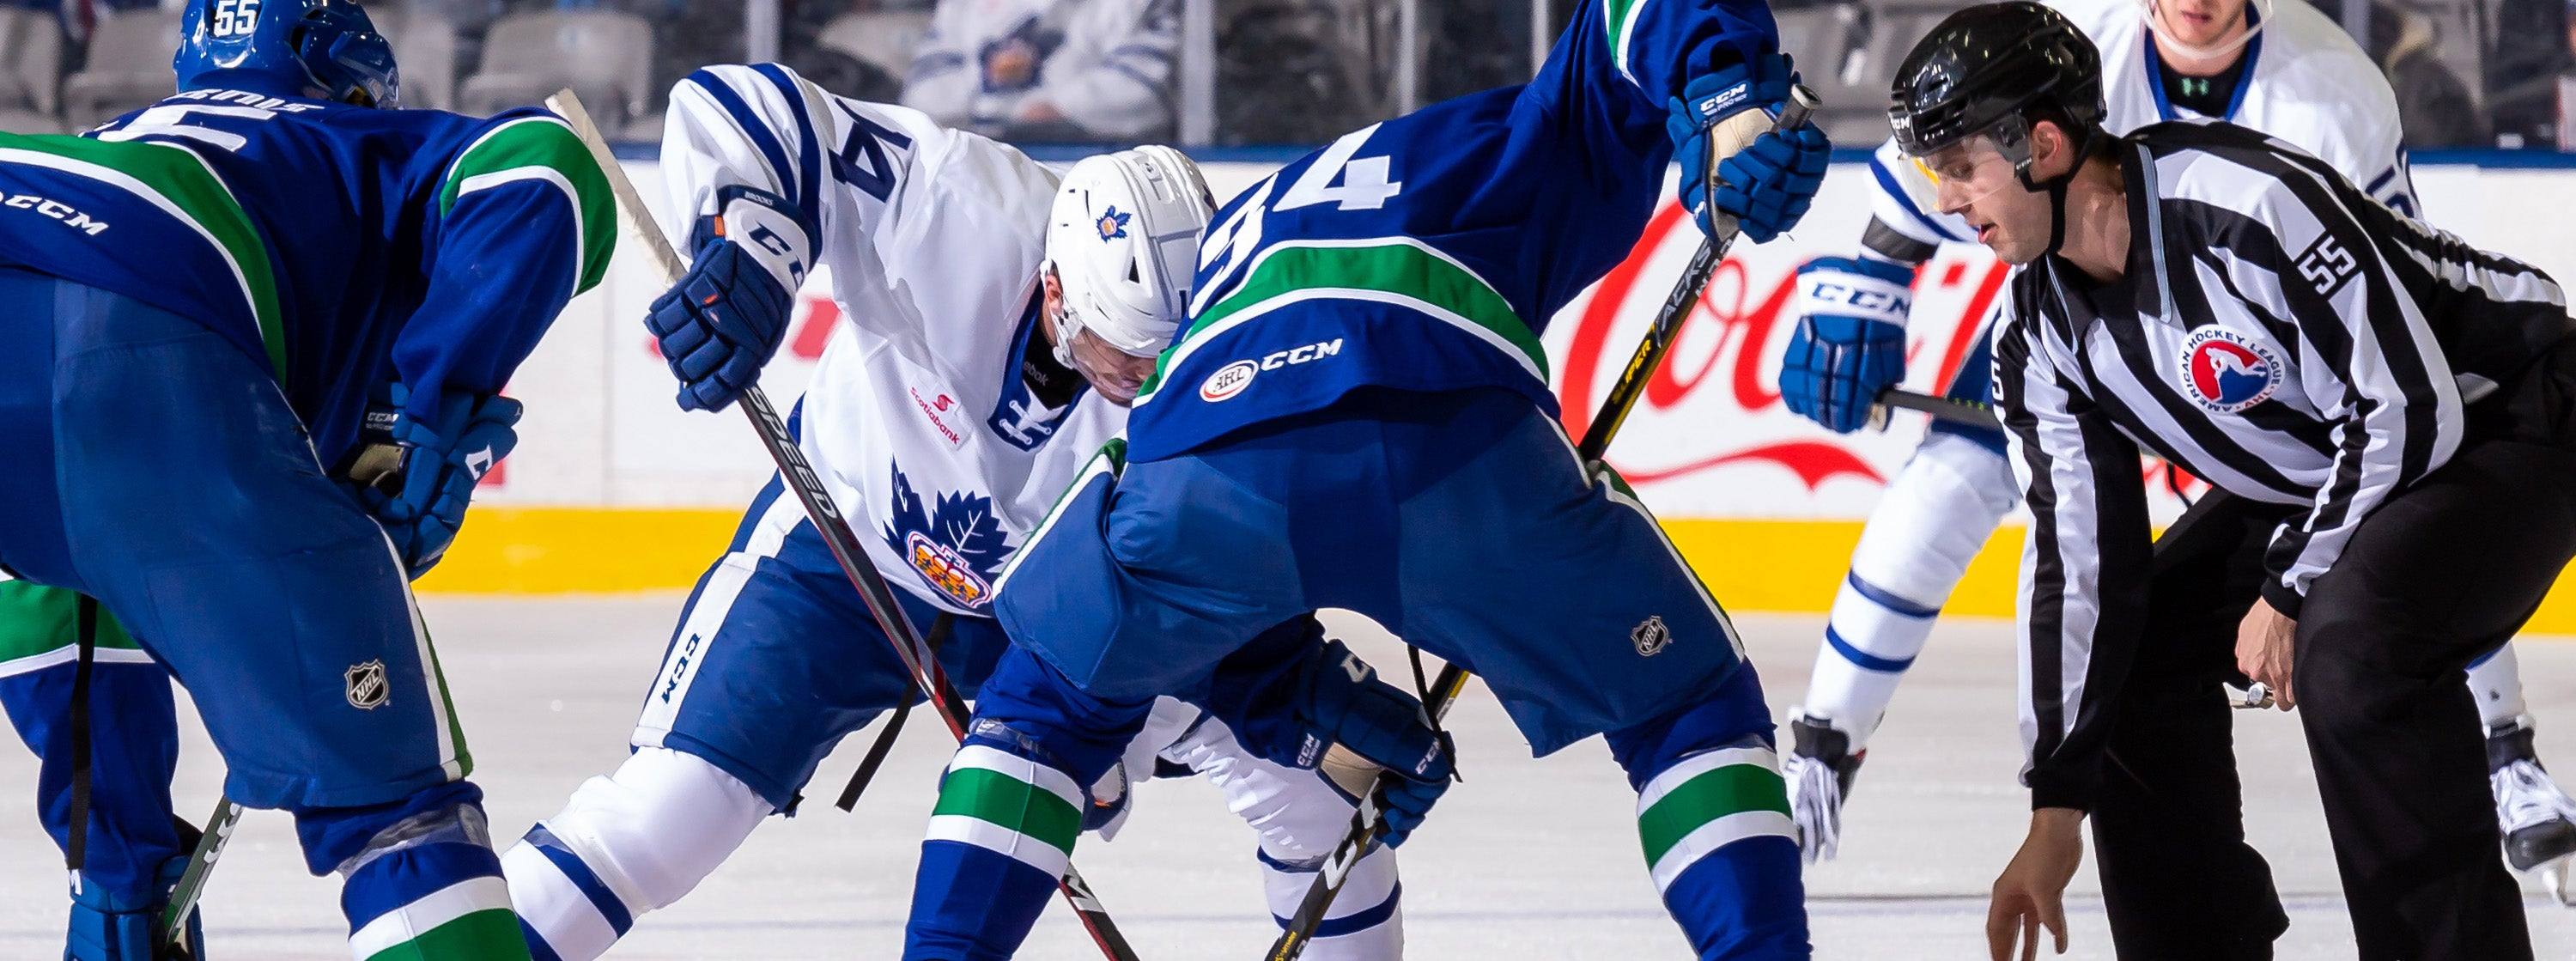 COMETS STALLED BY LATE SURGE FROM MARLIES